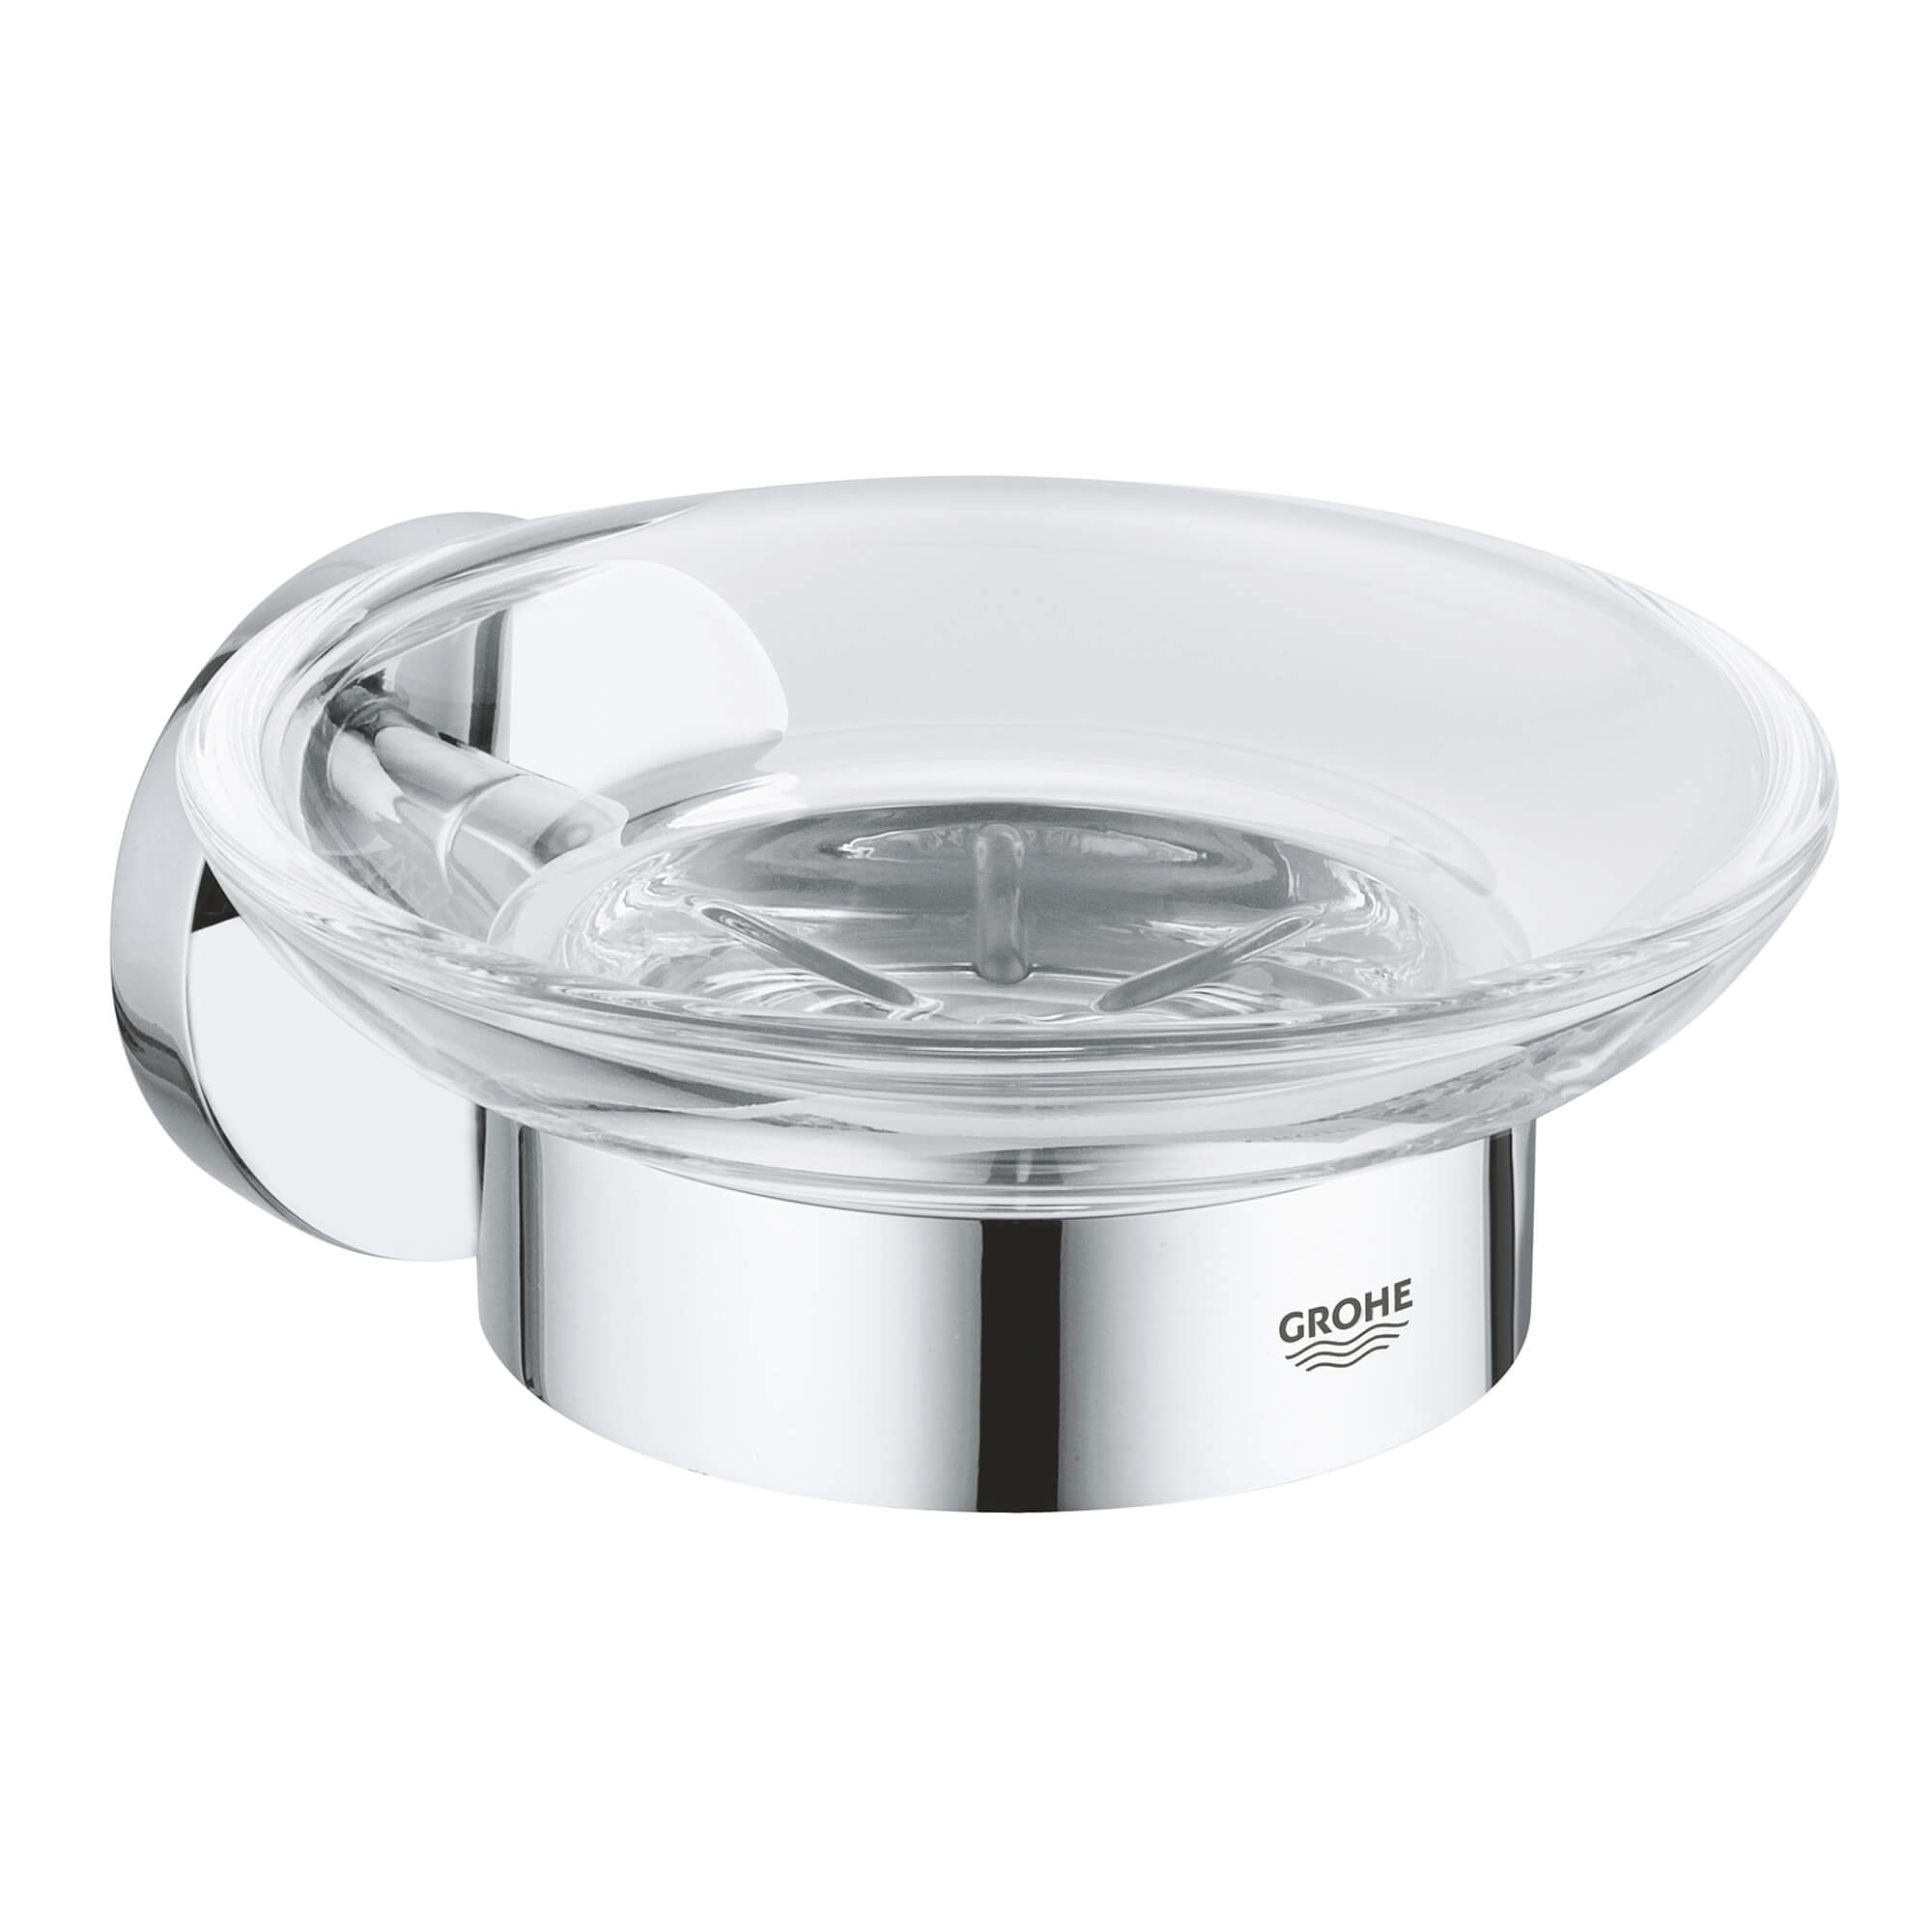 Soap Dish with Holder GROHE CHROME